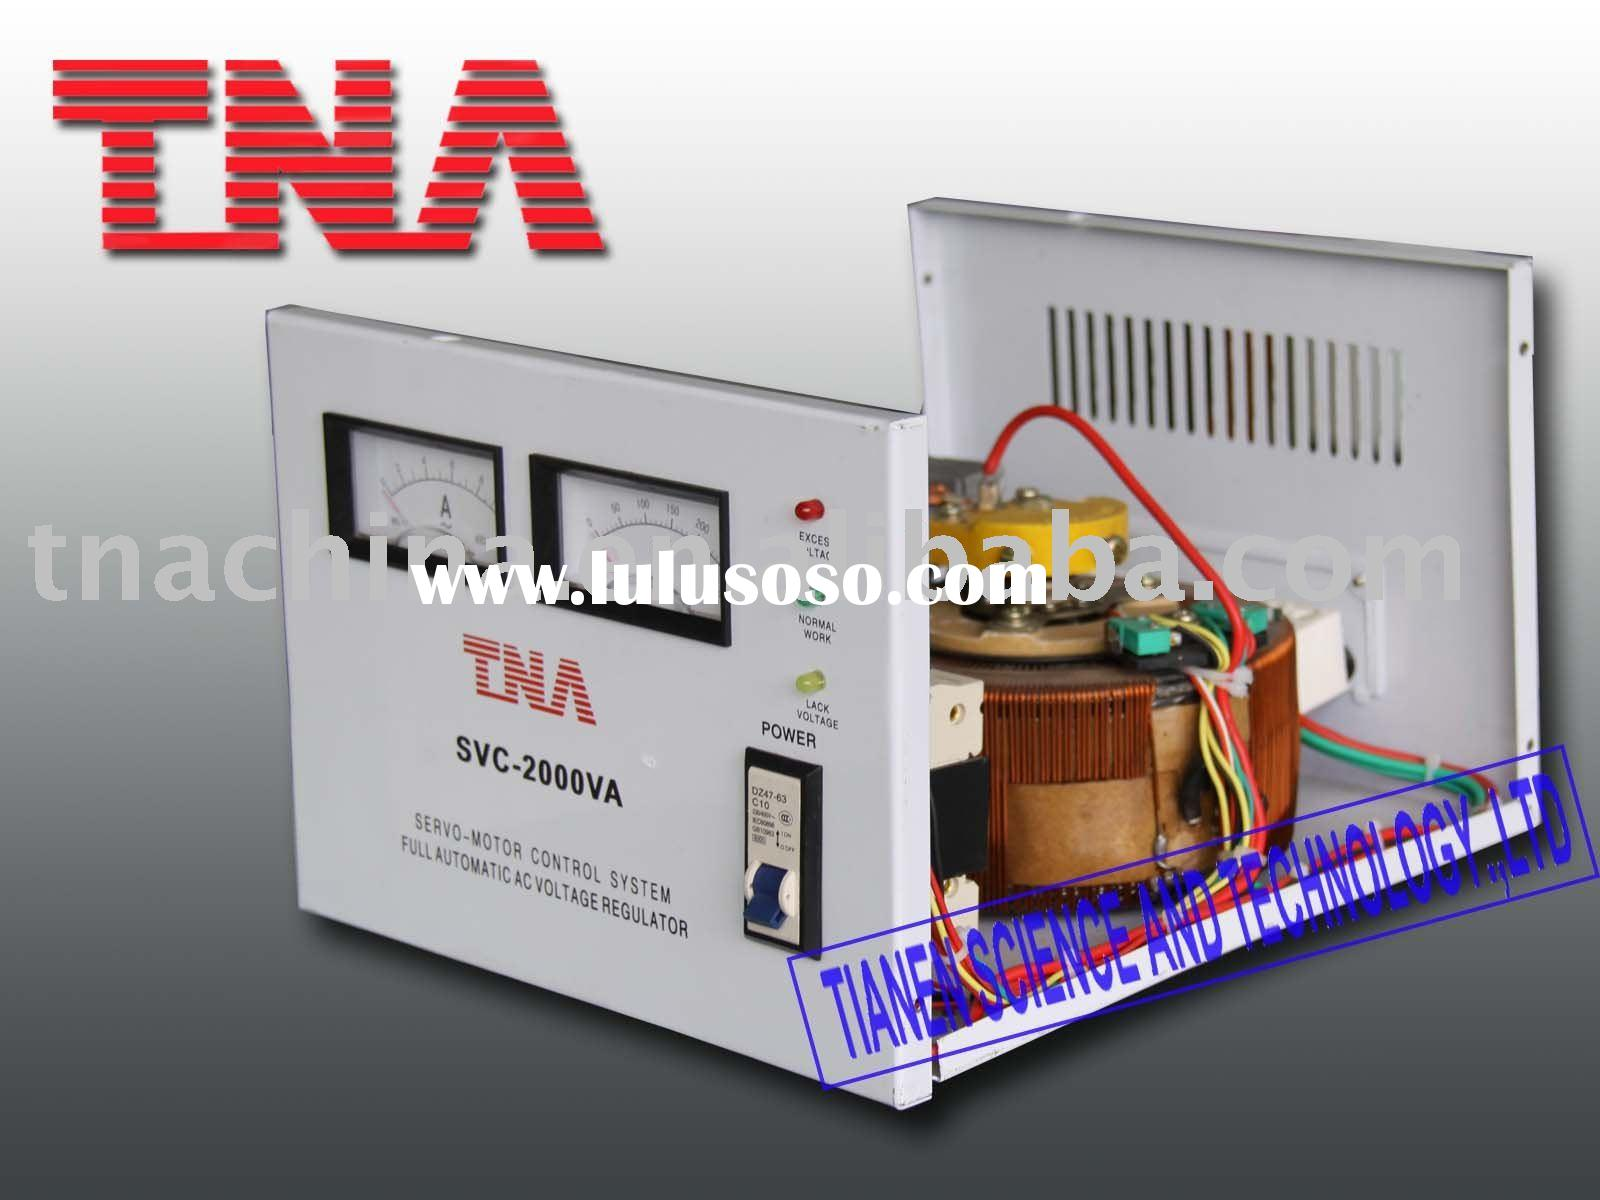 Ac Servo Motor Automatic Voltage Stabilizer For Sale Pricechina Circuit Diagram Other Products From This Supplier